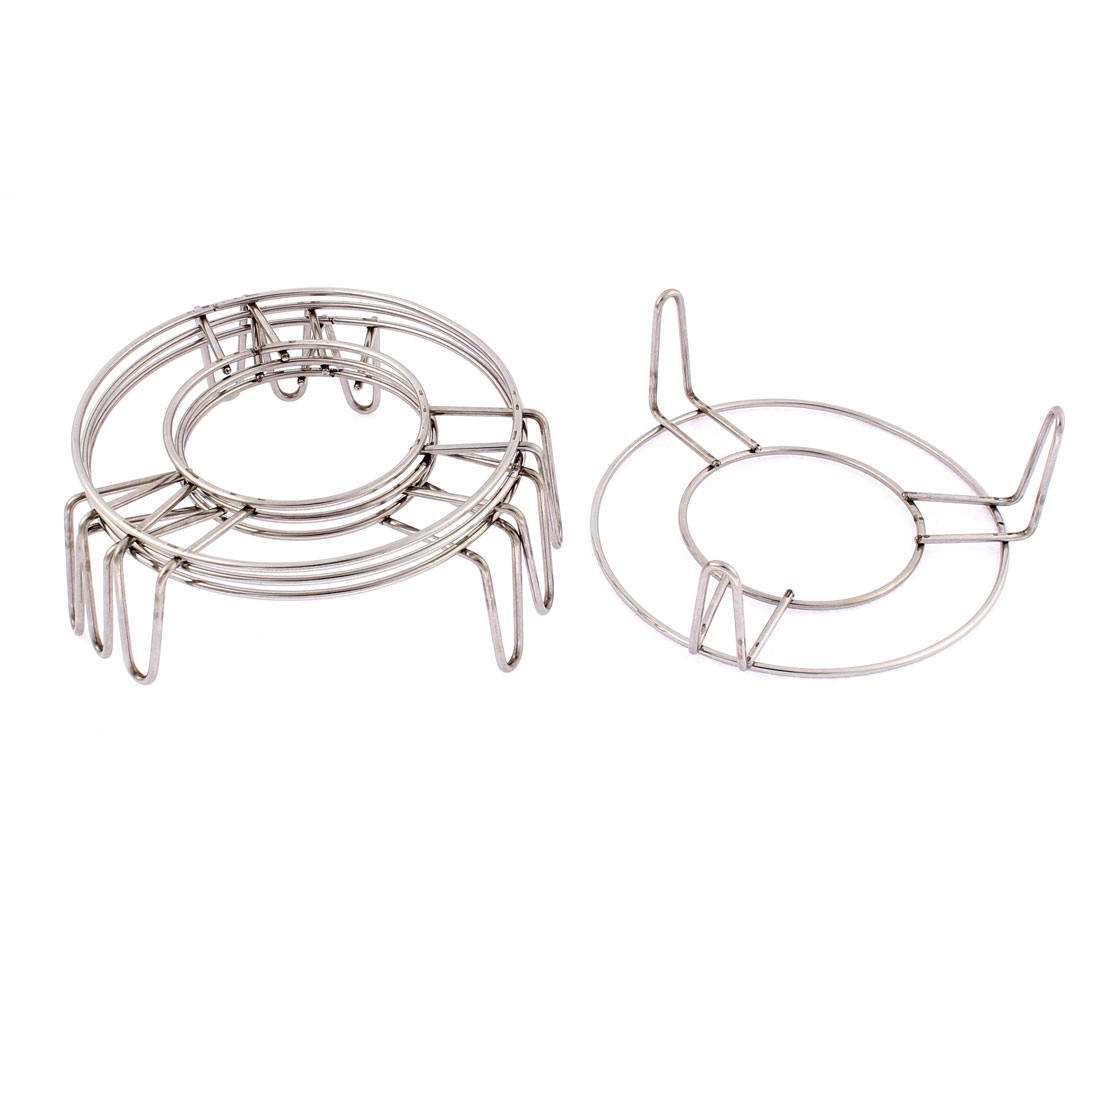 Kitchen Stainless Steel Steaming Rack Stand 5 Inch x 2 Inch 4 Pcs